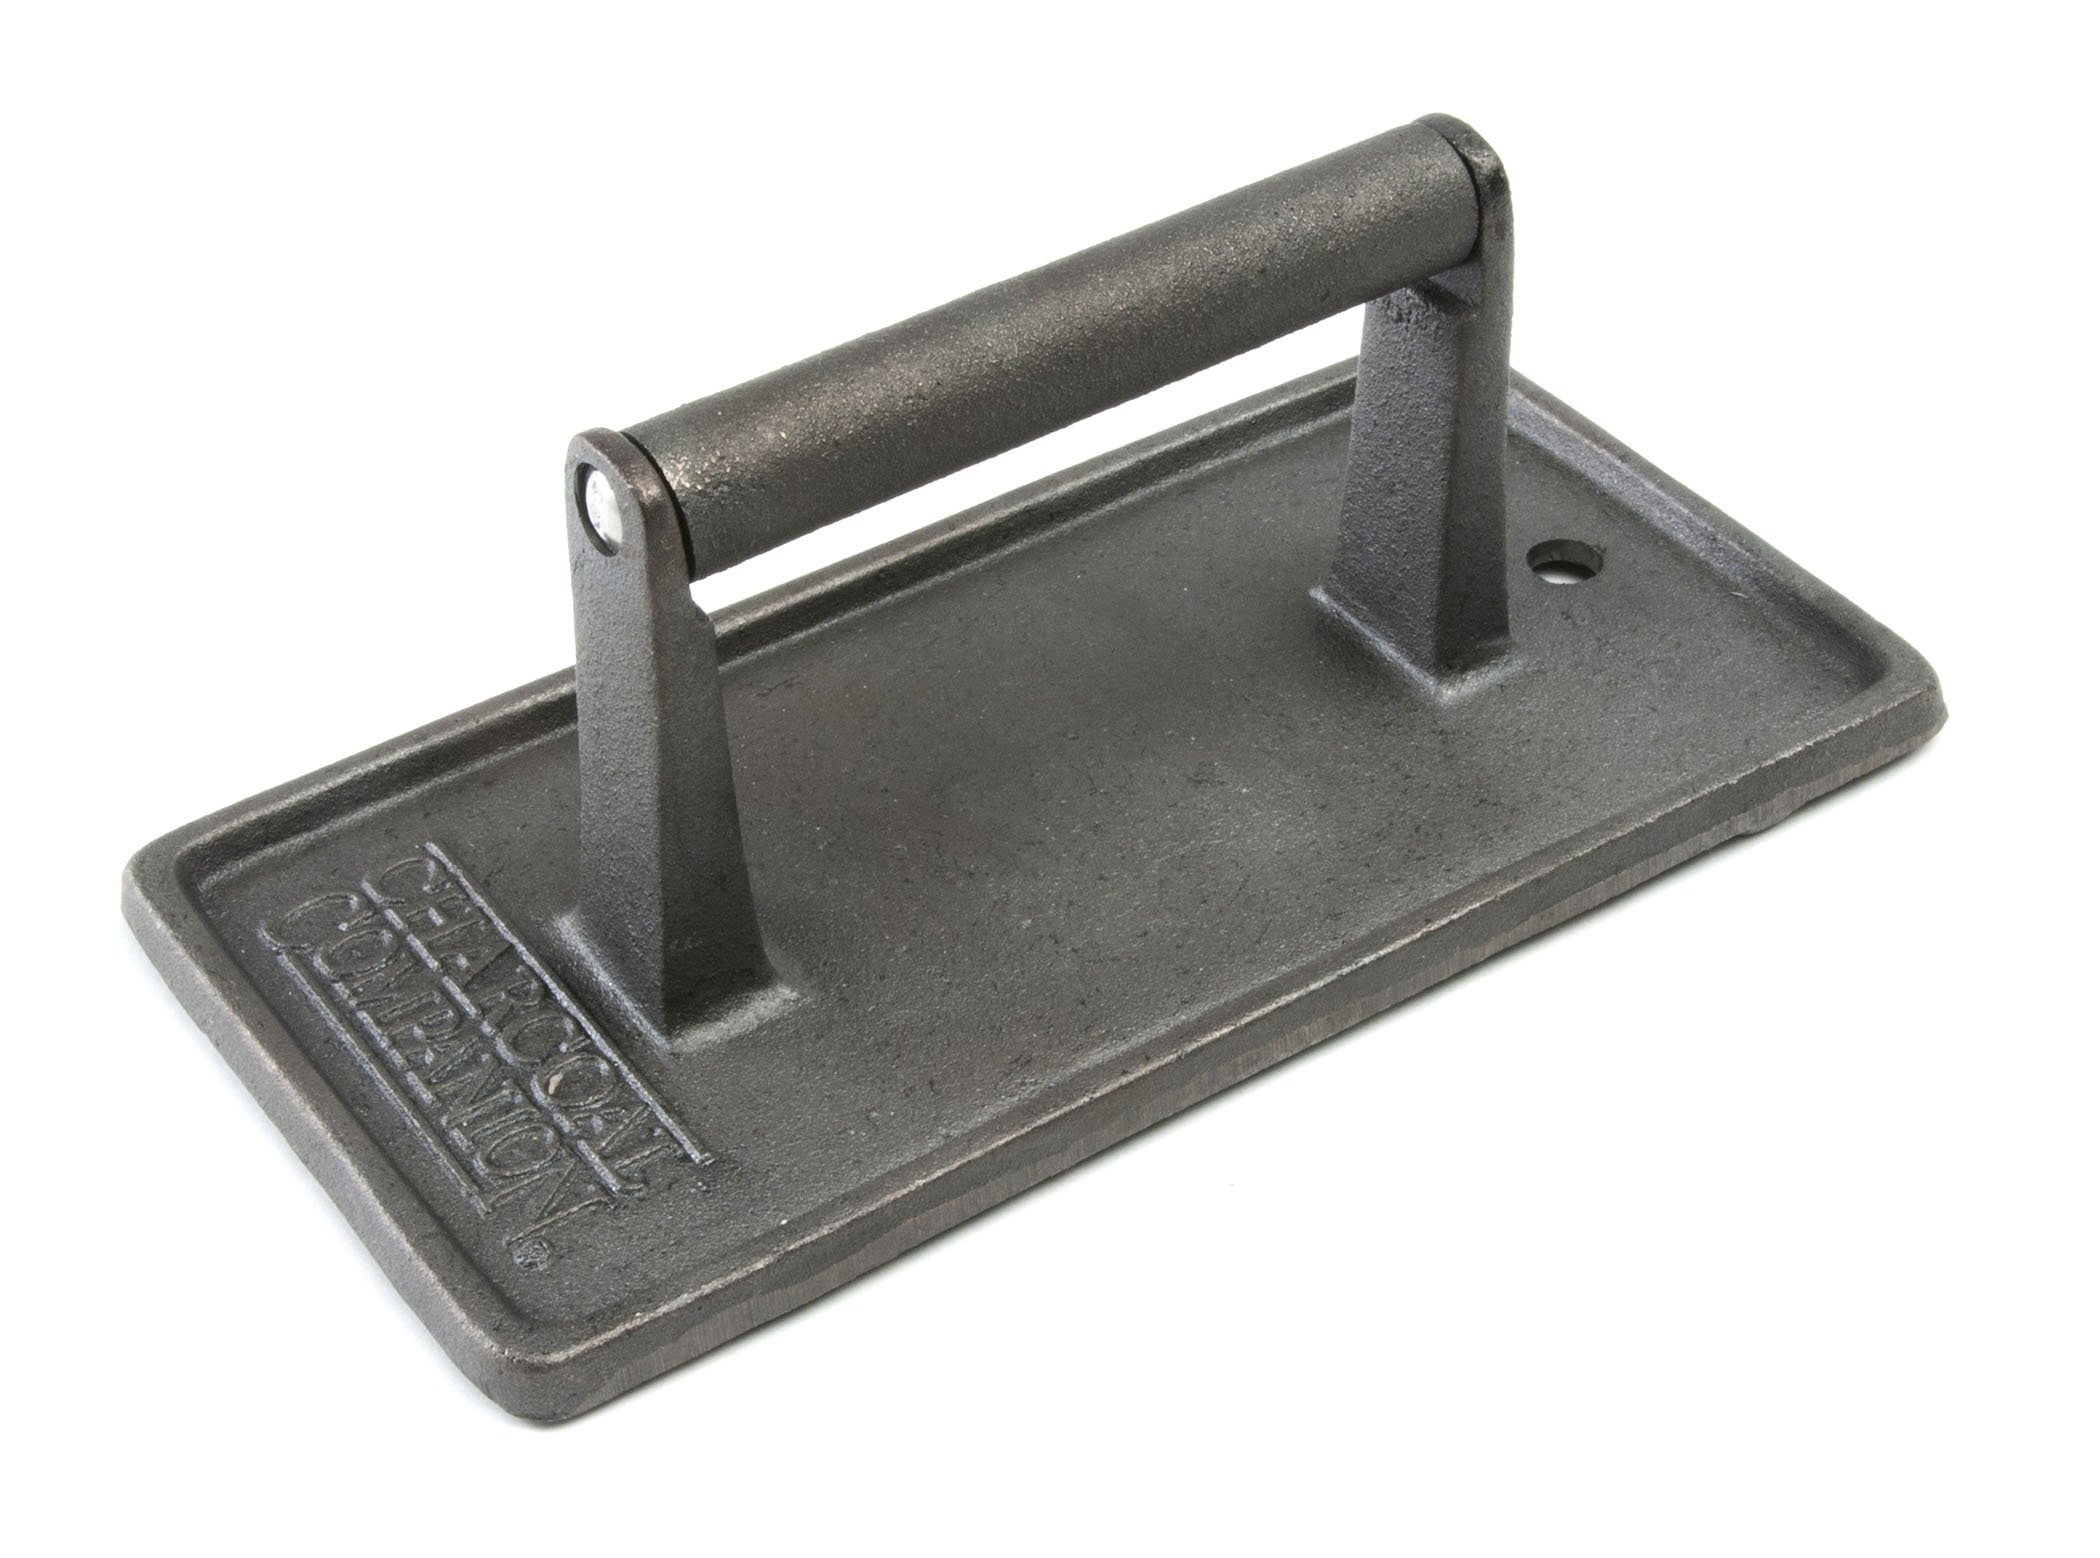 Charcoal Companion Cast Iron 8-3/4-Inch by 4-1/2-Inch Rectangular Grill Press by Charcoal Companion